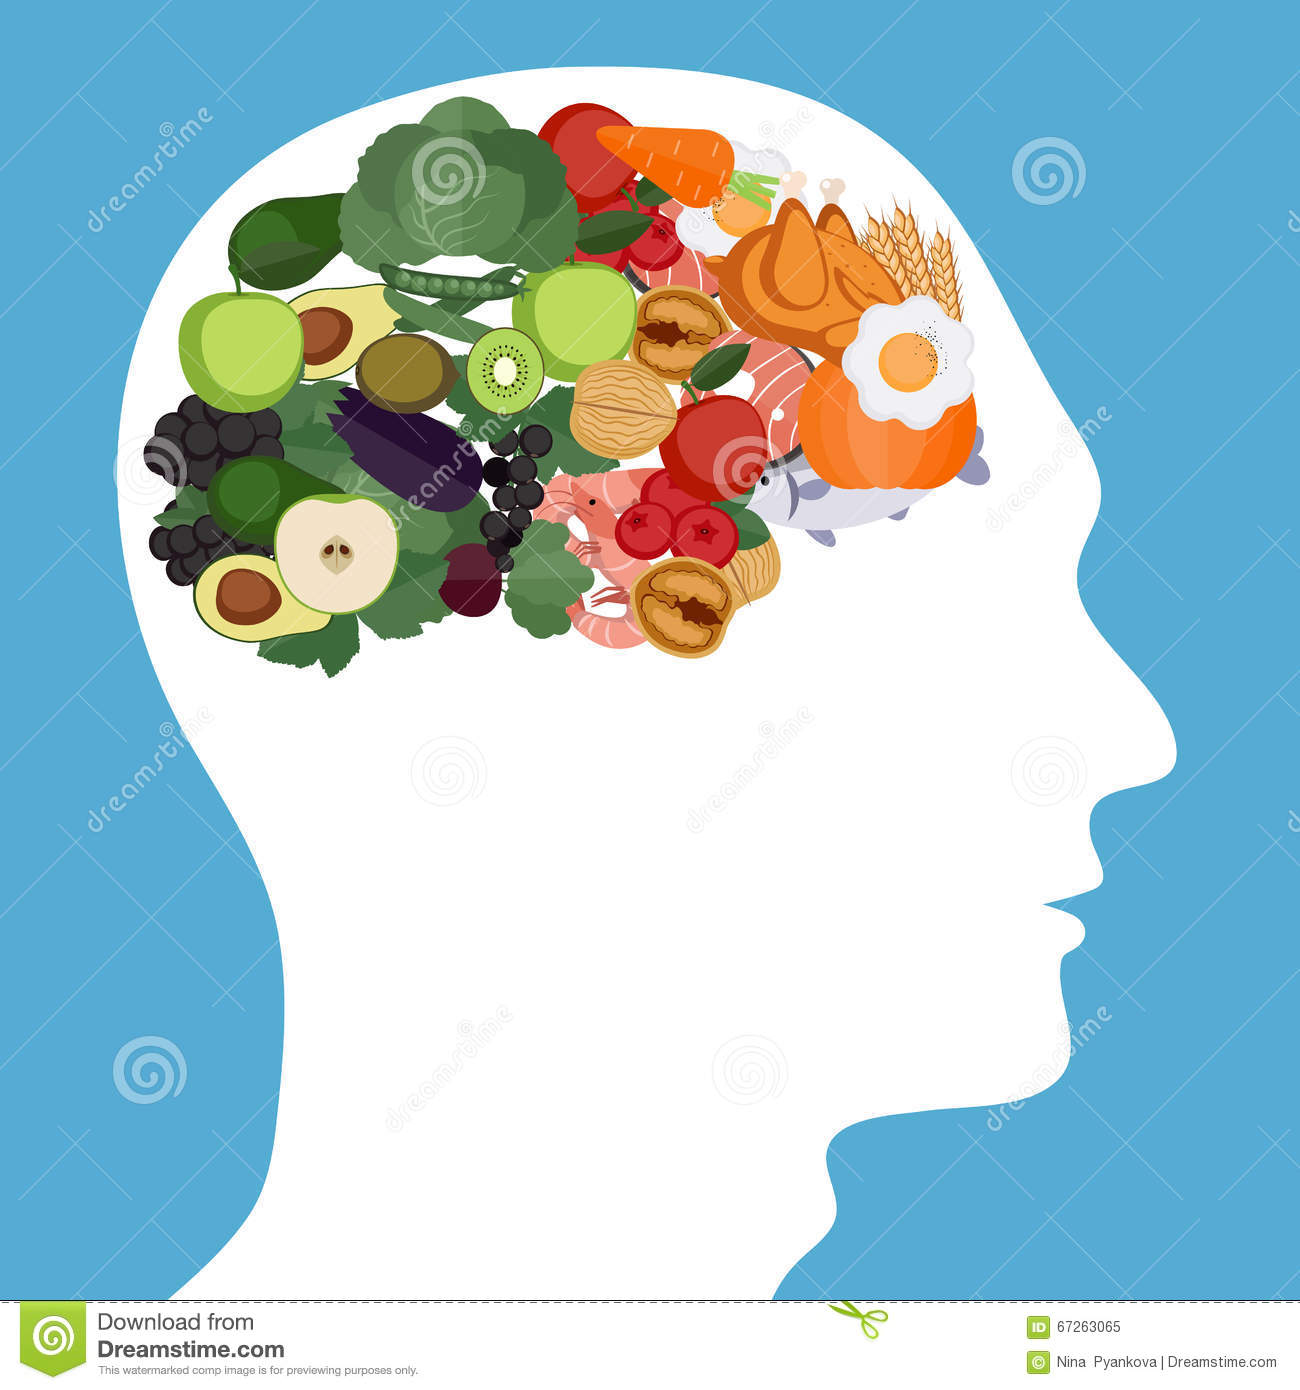 Supplements for brain health image 3